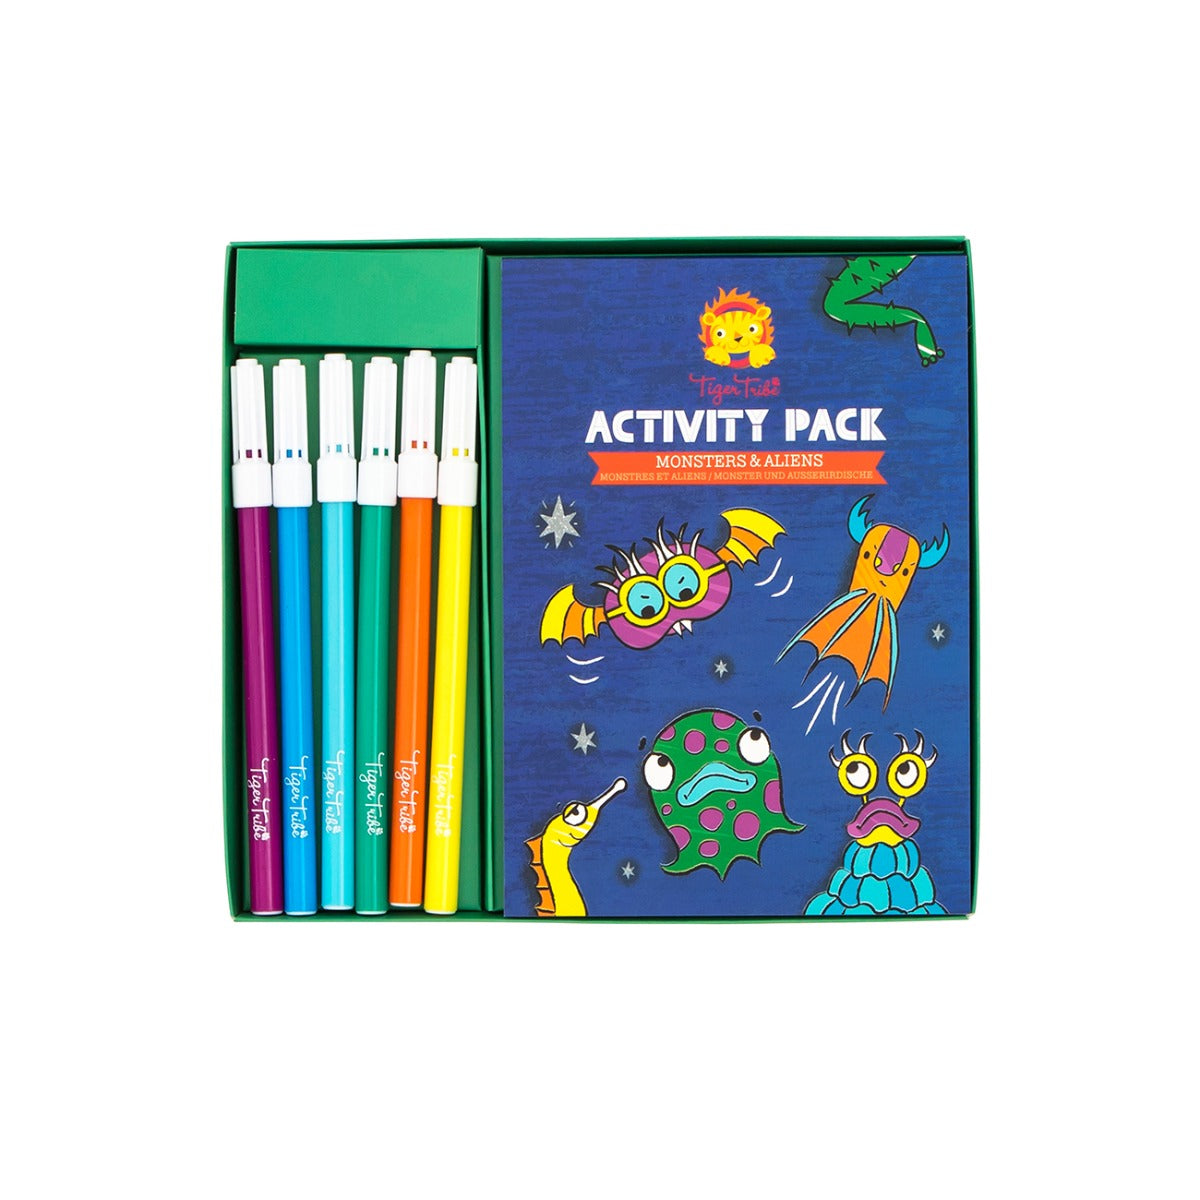 Tiger Tribe Activity Pack Monsters and Aliens